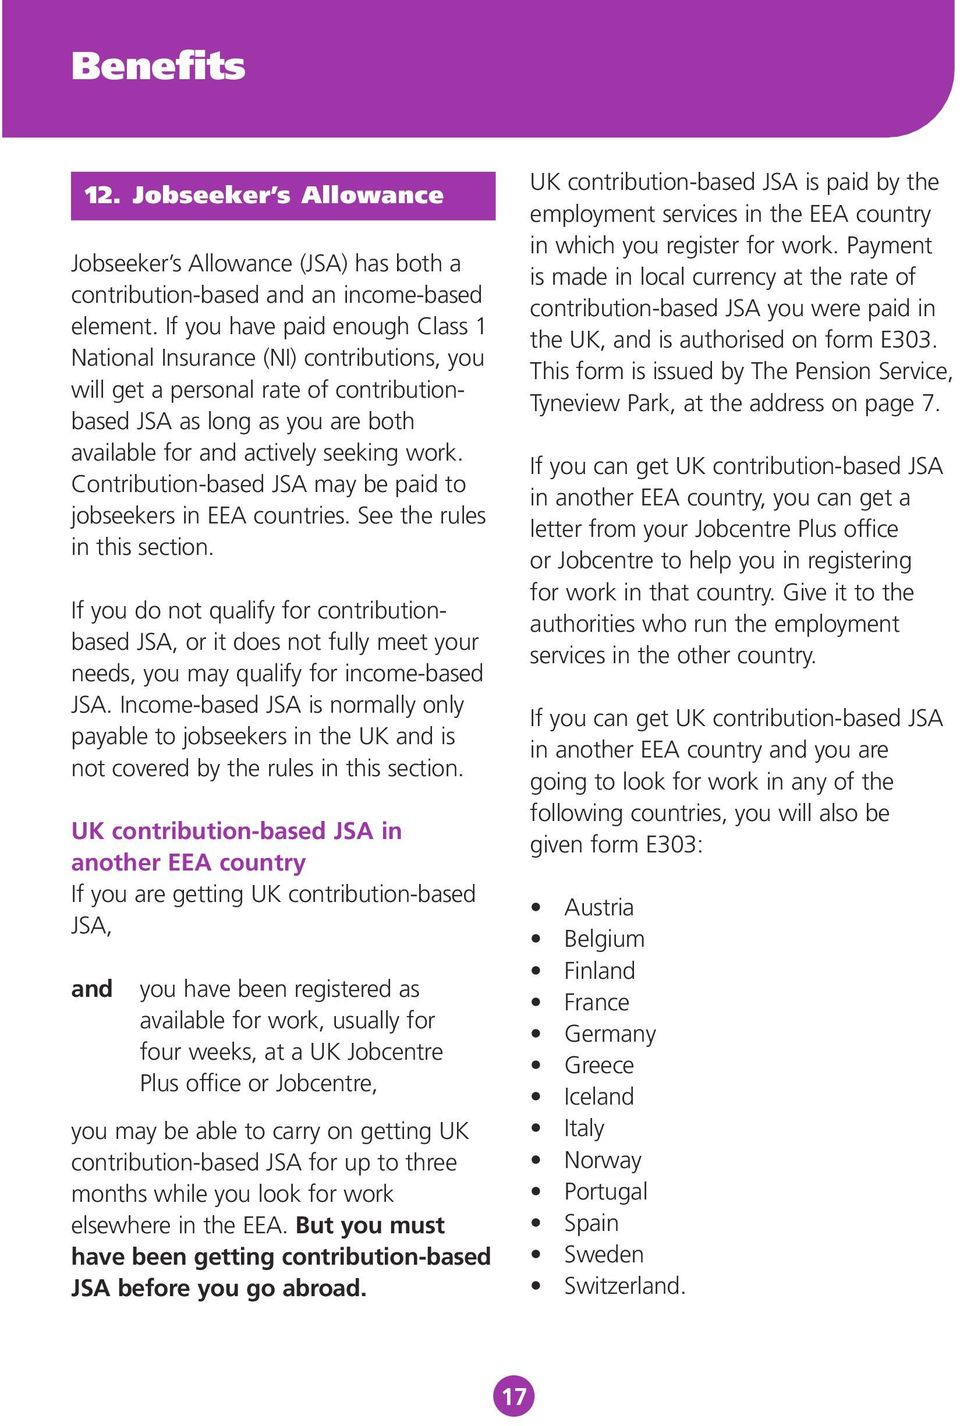 Contribution-based JSA may be paid to jobseekers in EEA countries. See the rules in this section.